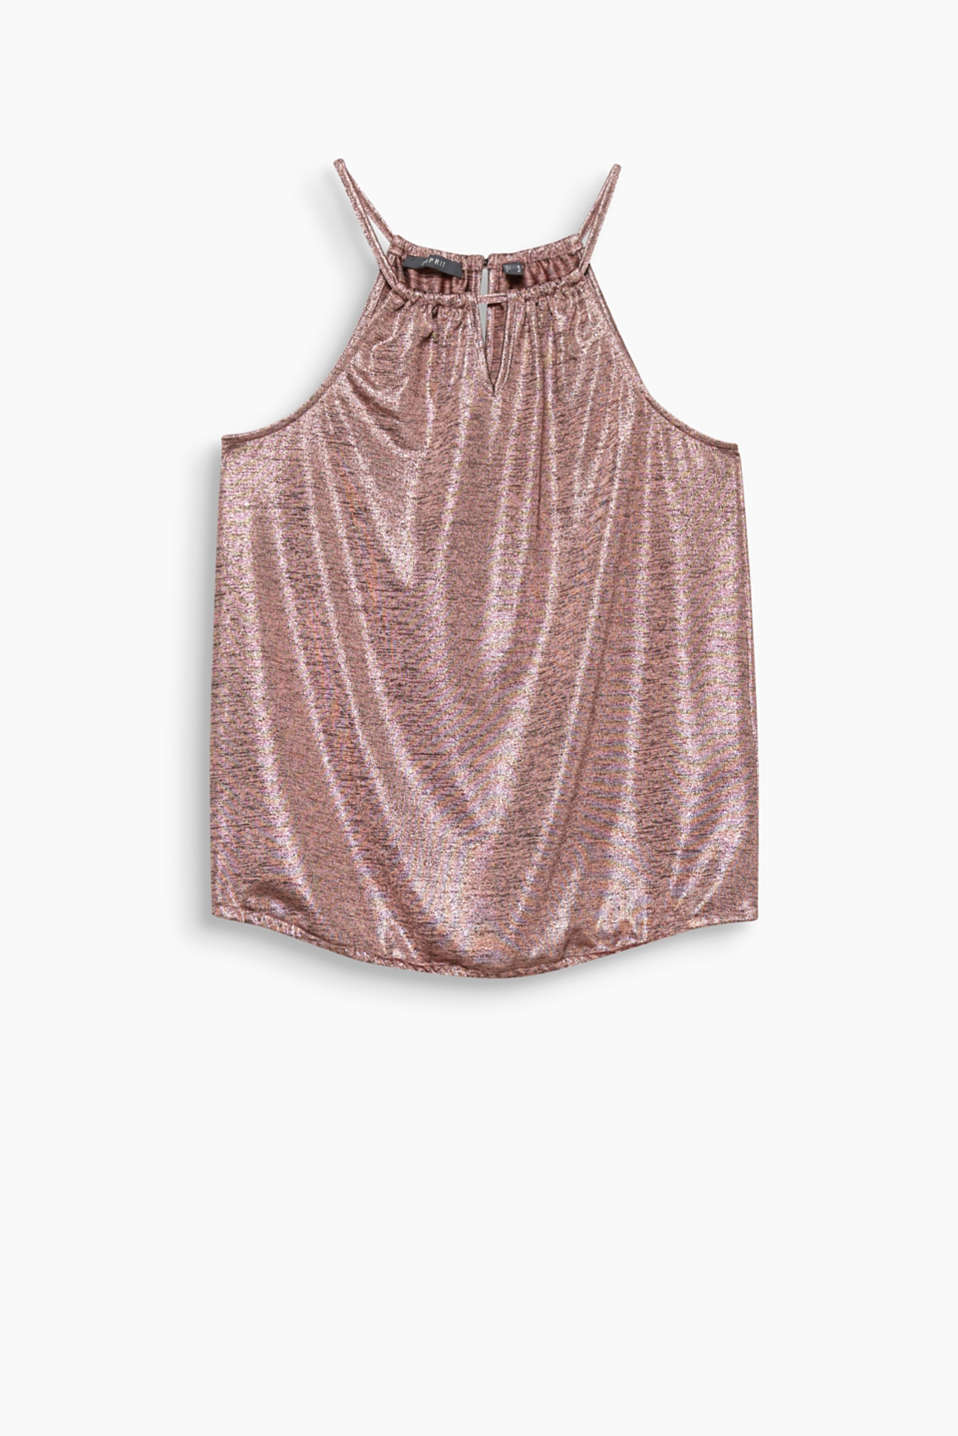 Melange top in a fine shine with cut-away shoulders will now be your new party look!